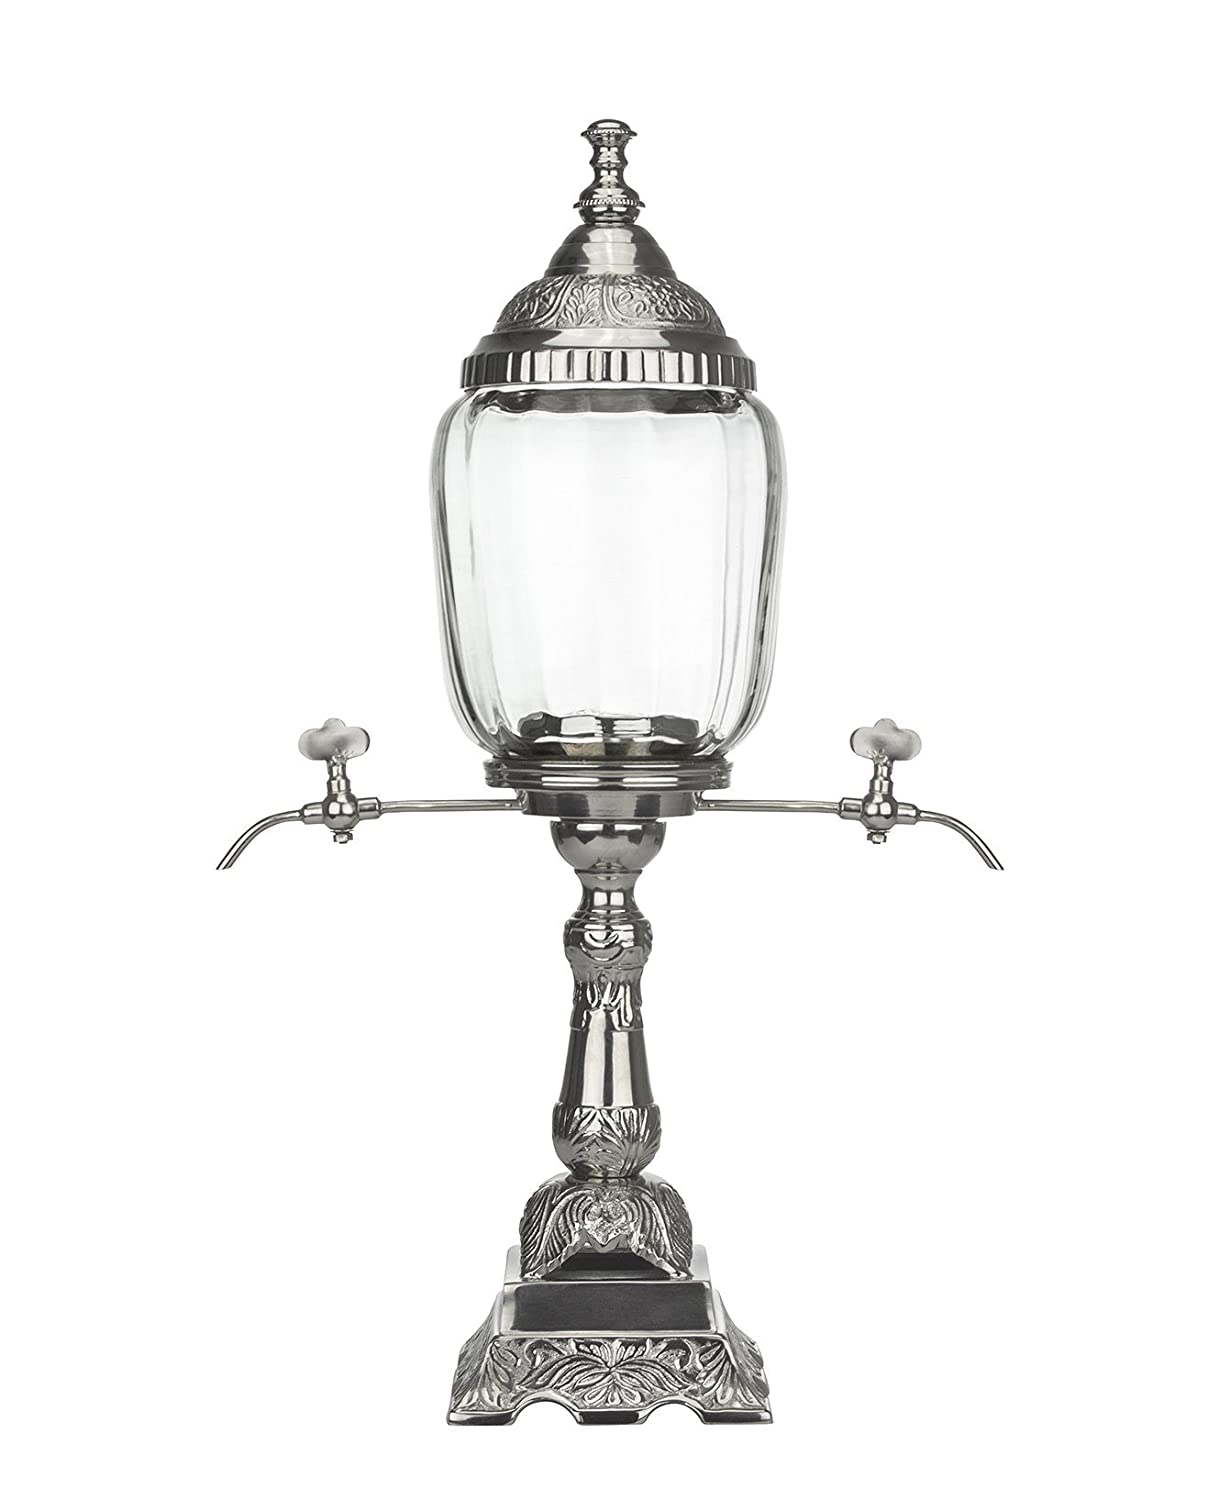 La Belle Orleans Absinthe Fountain, 2 Spout Bonnecaze Absinthe & Home